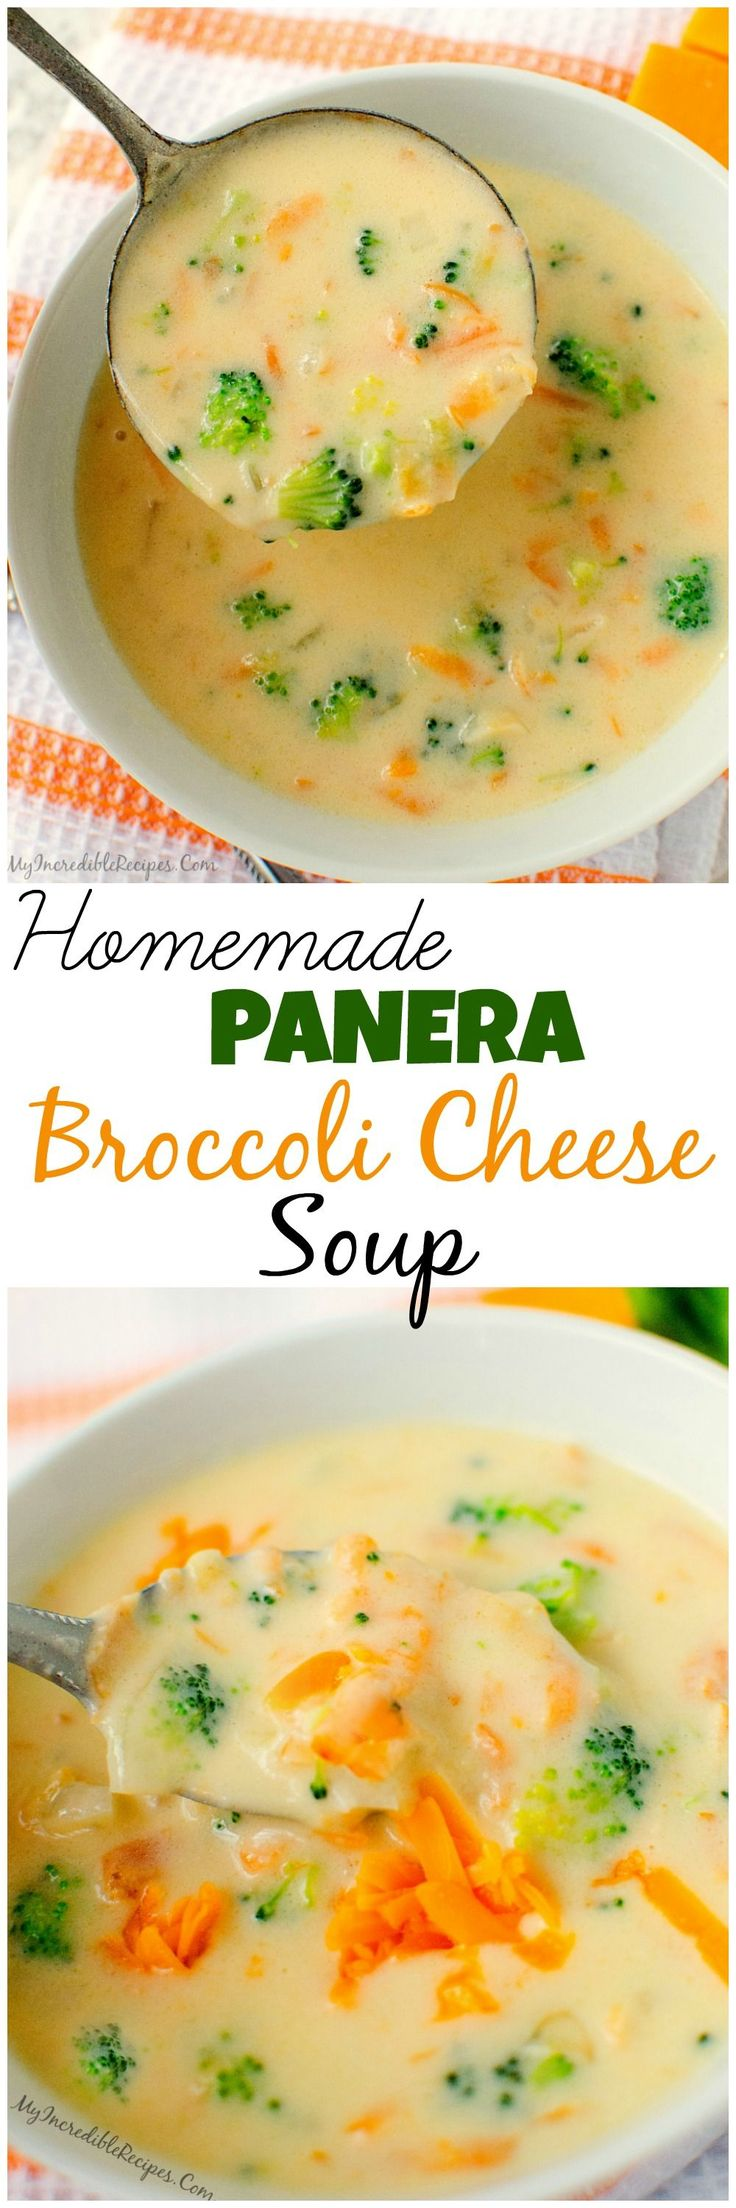 Homemade Panera Broccoli Cheese Soup!